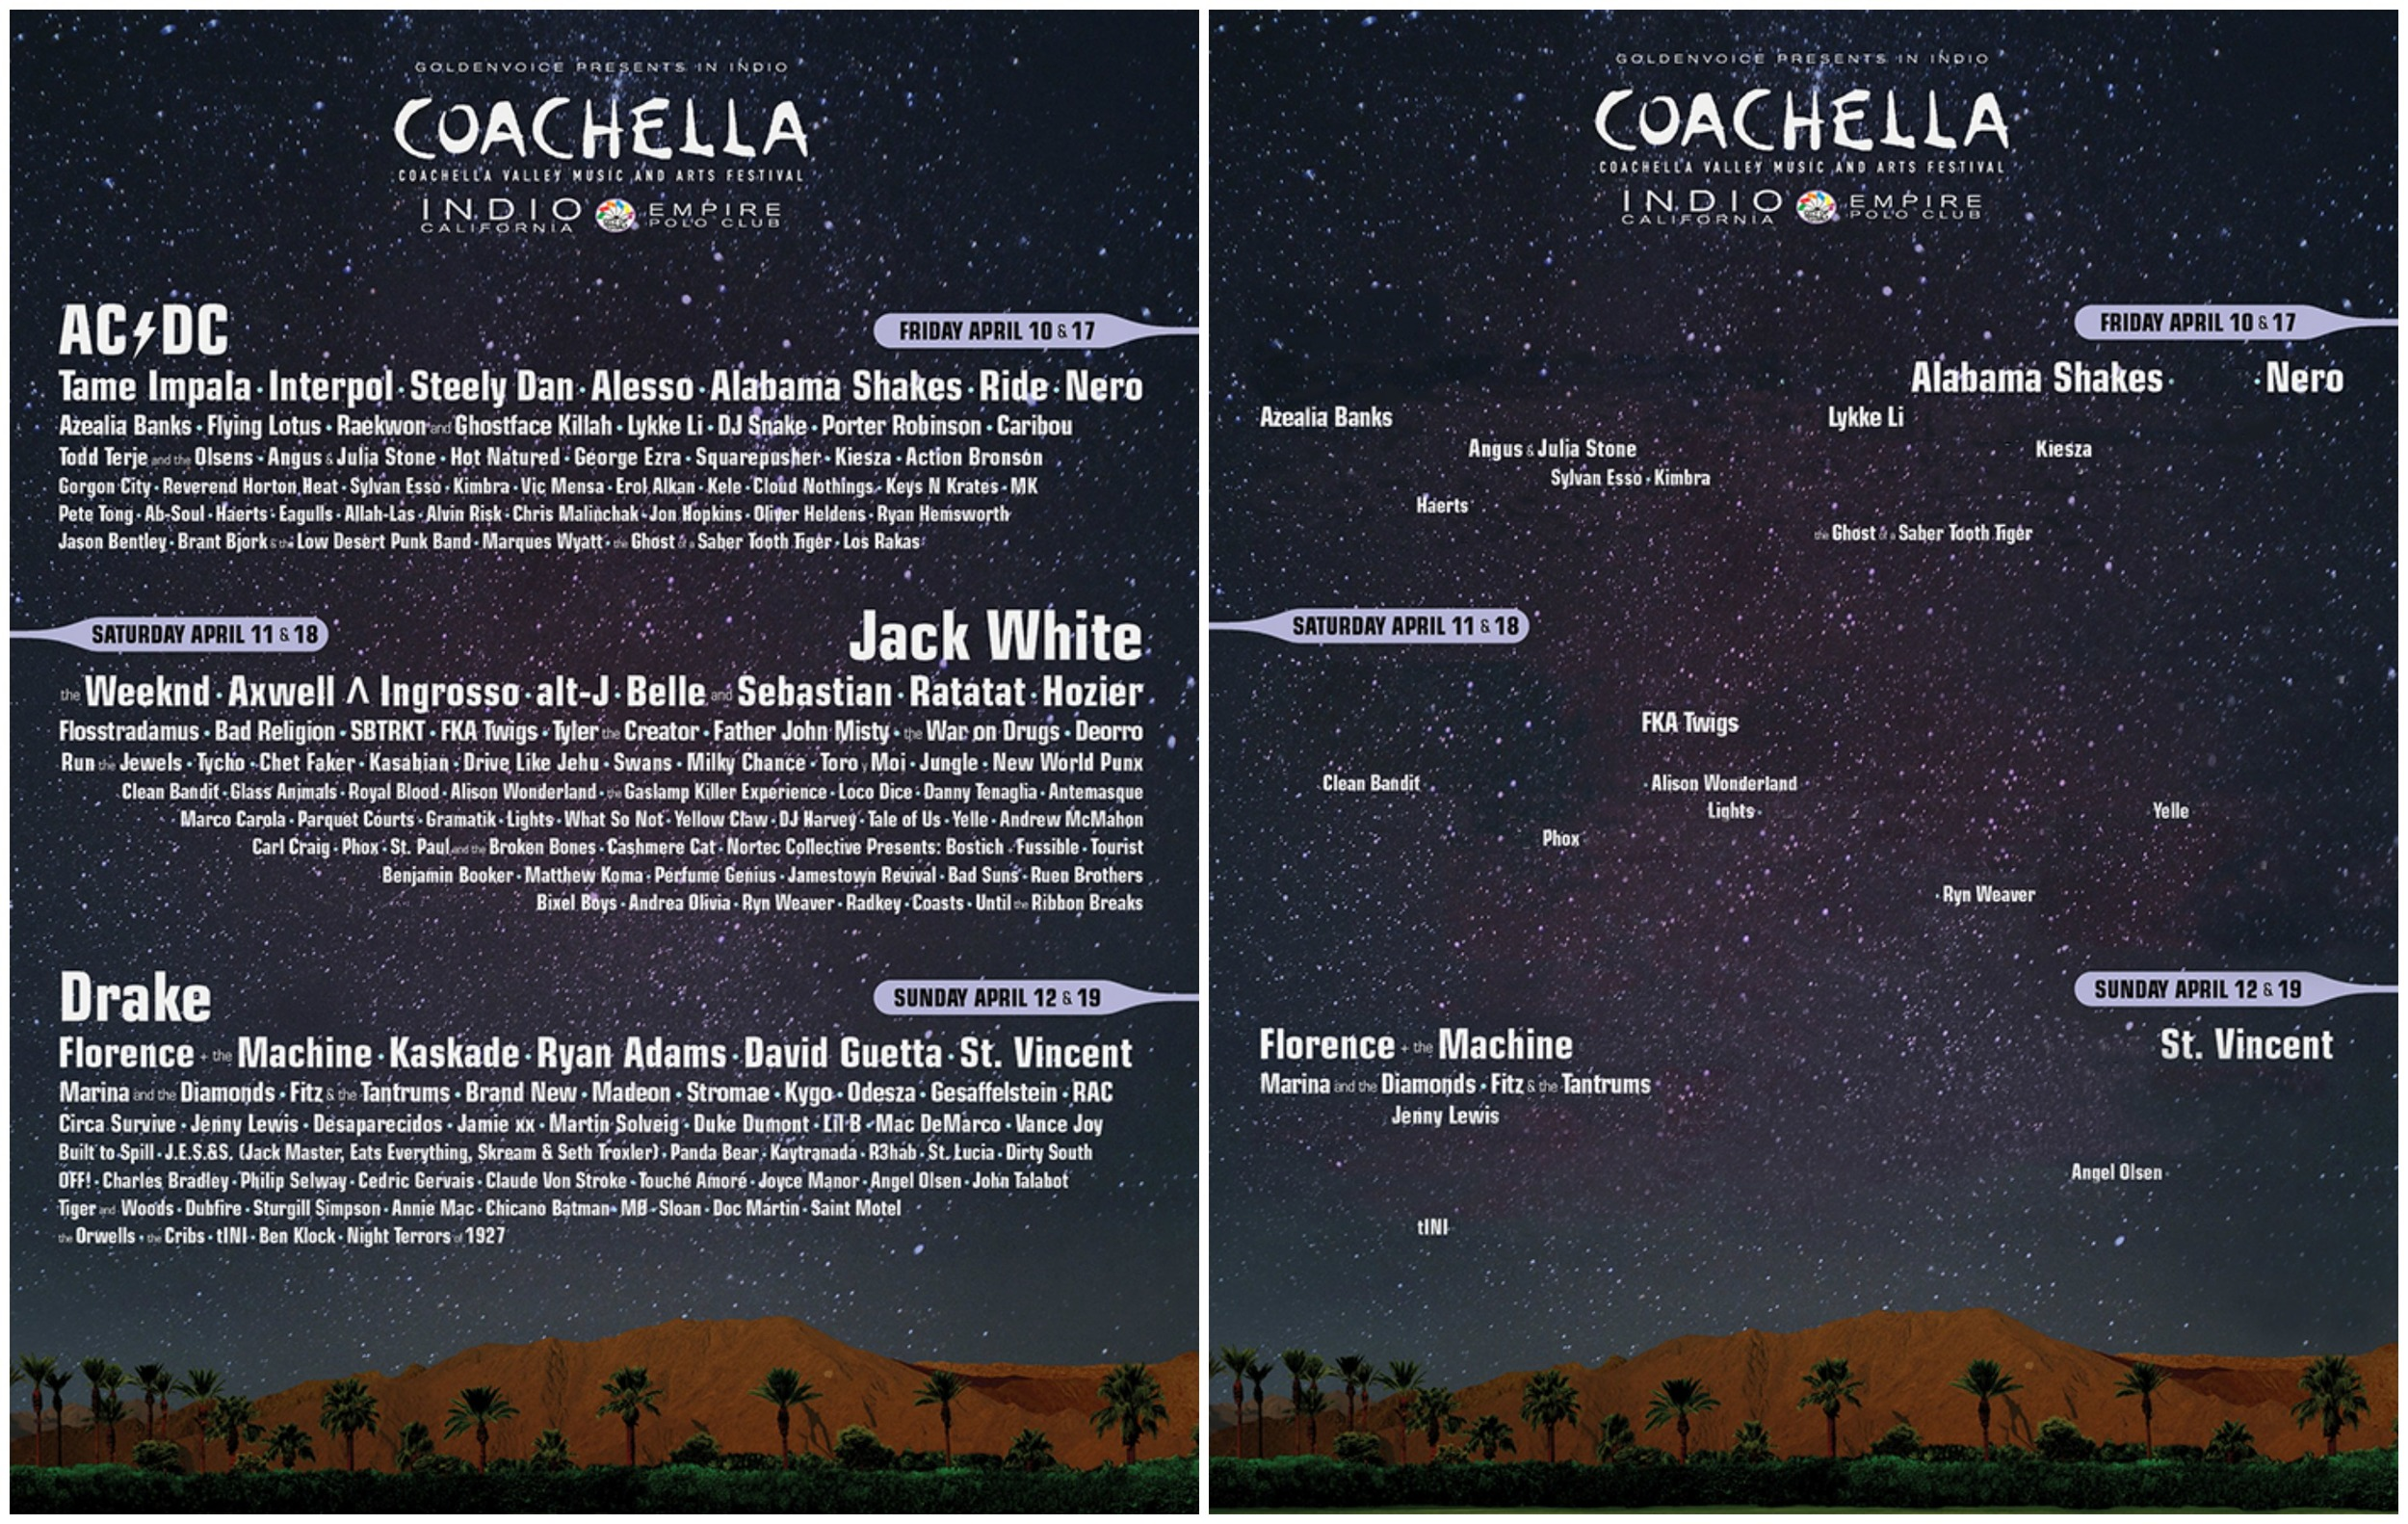 The 2015 Coachella lineup with the all-male acts removed.